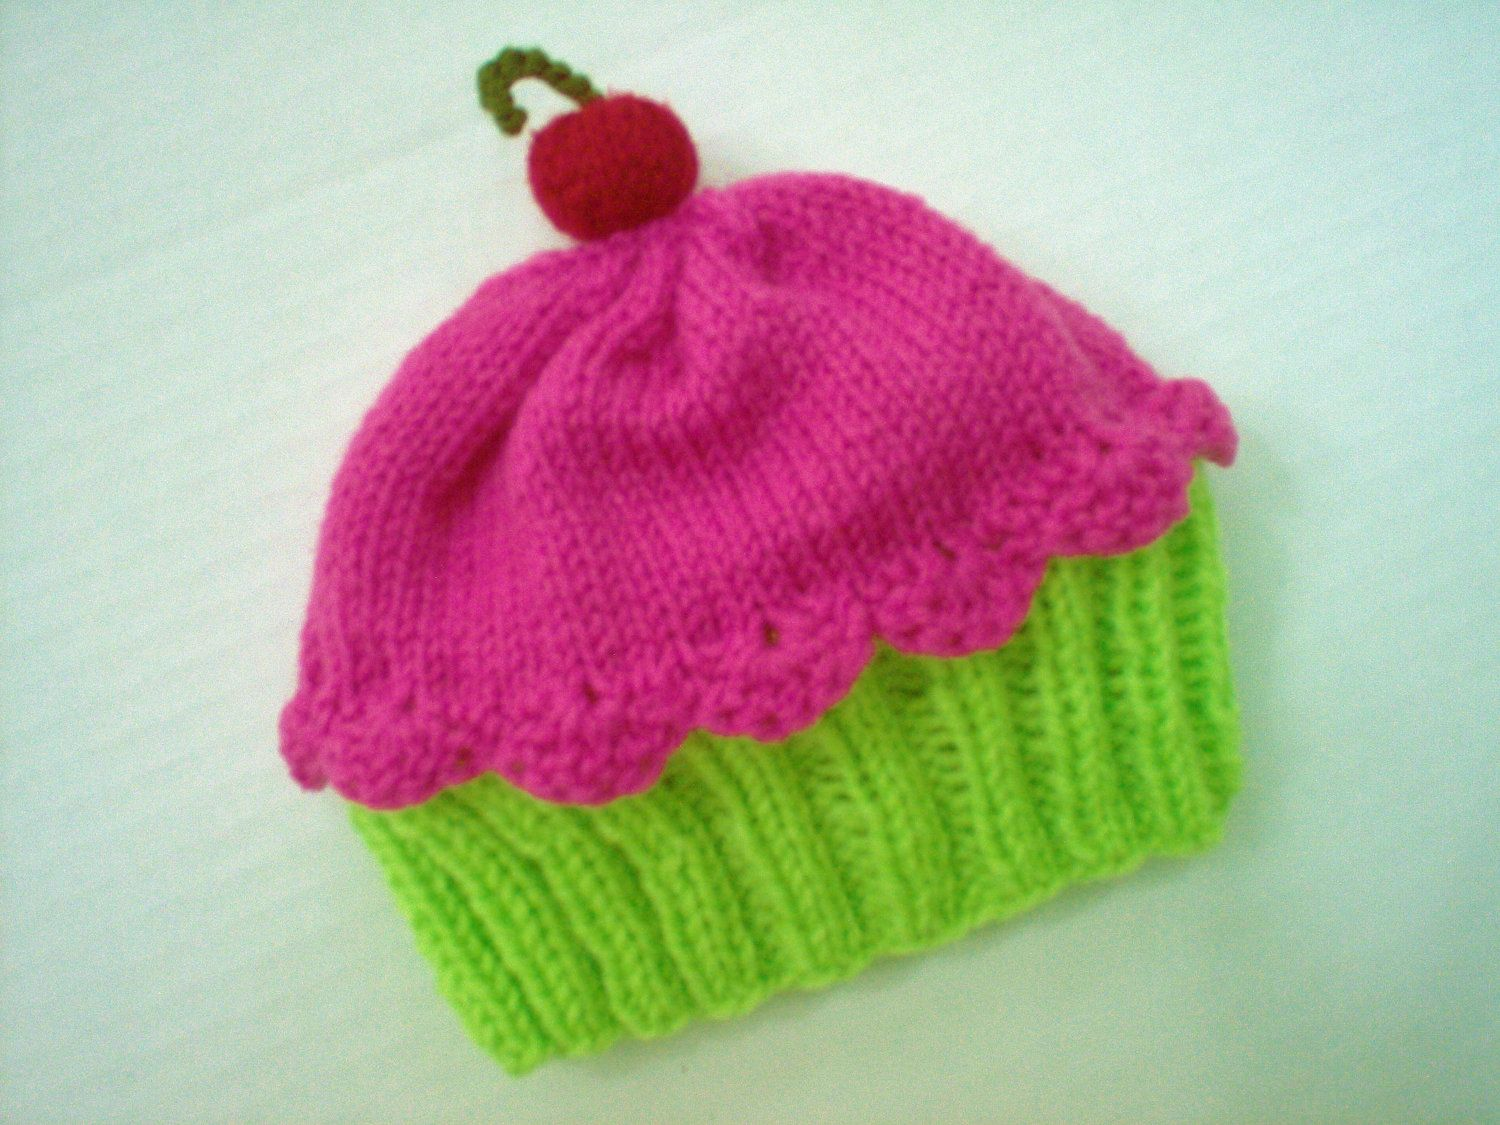 Handmade hand knit cupcake hat with cherry on top key lime green cupcake hat cherry on top key lime green cake raspberry watermelon frosting handmade knit 6 8 12 18 months children adults 2 3 4 5 6 7 teen bankloansurffo Images